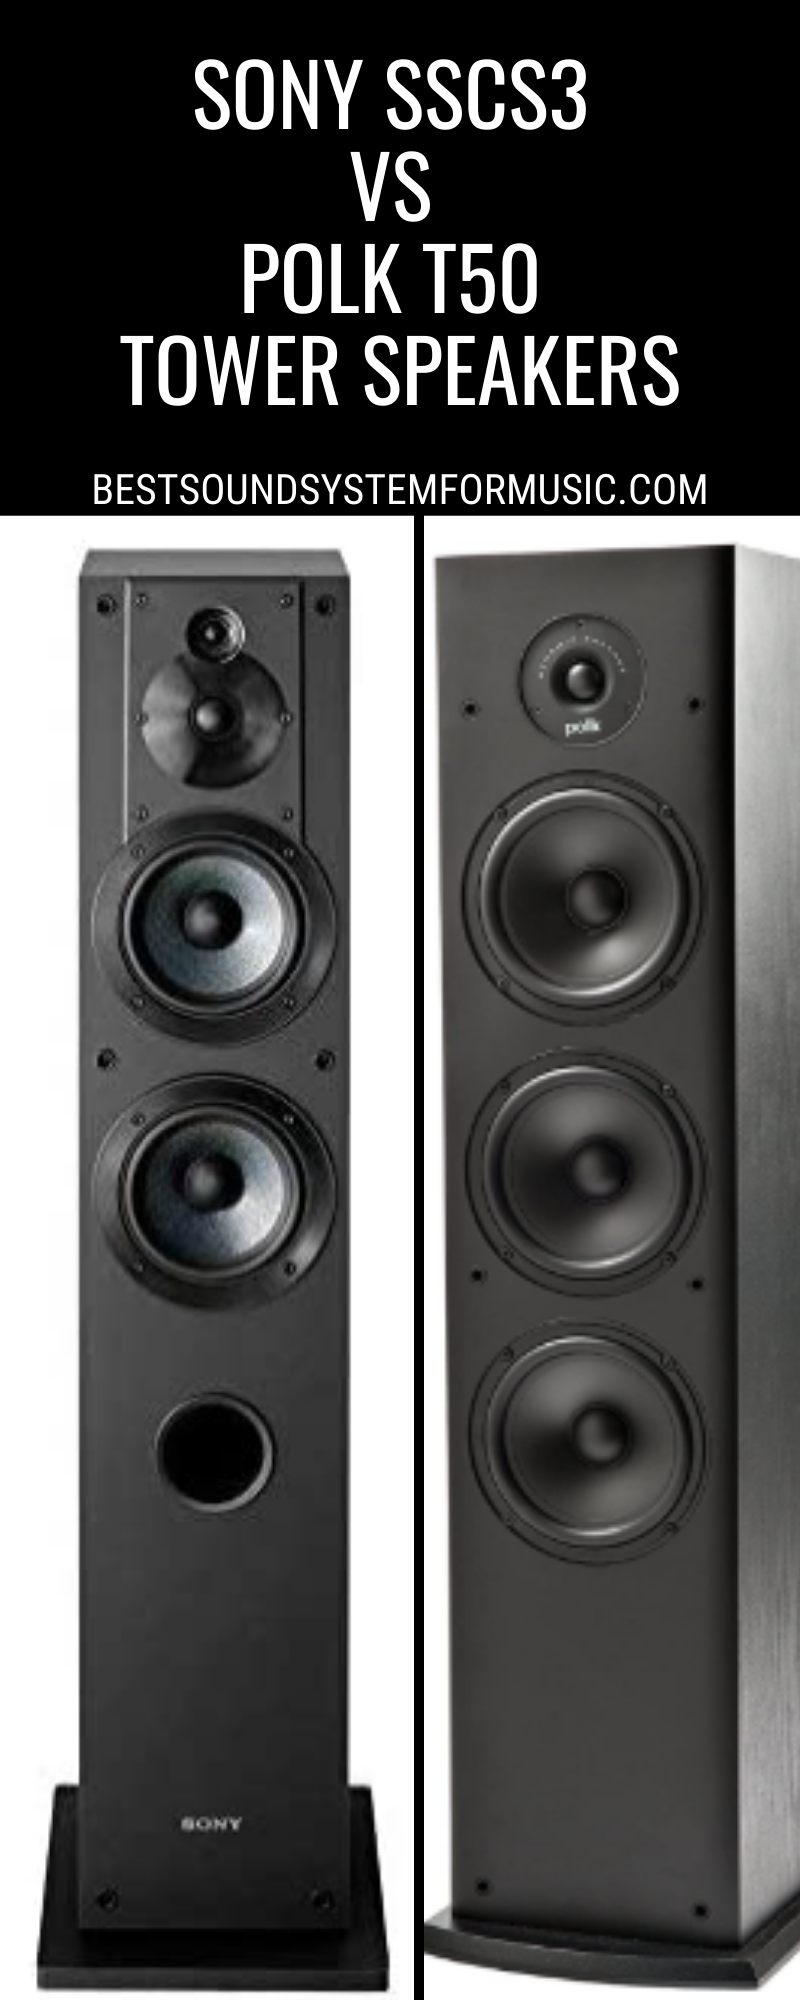 Sony SSCS3 Vs Polk T50 Tower Speakers